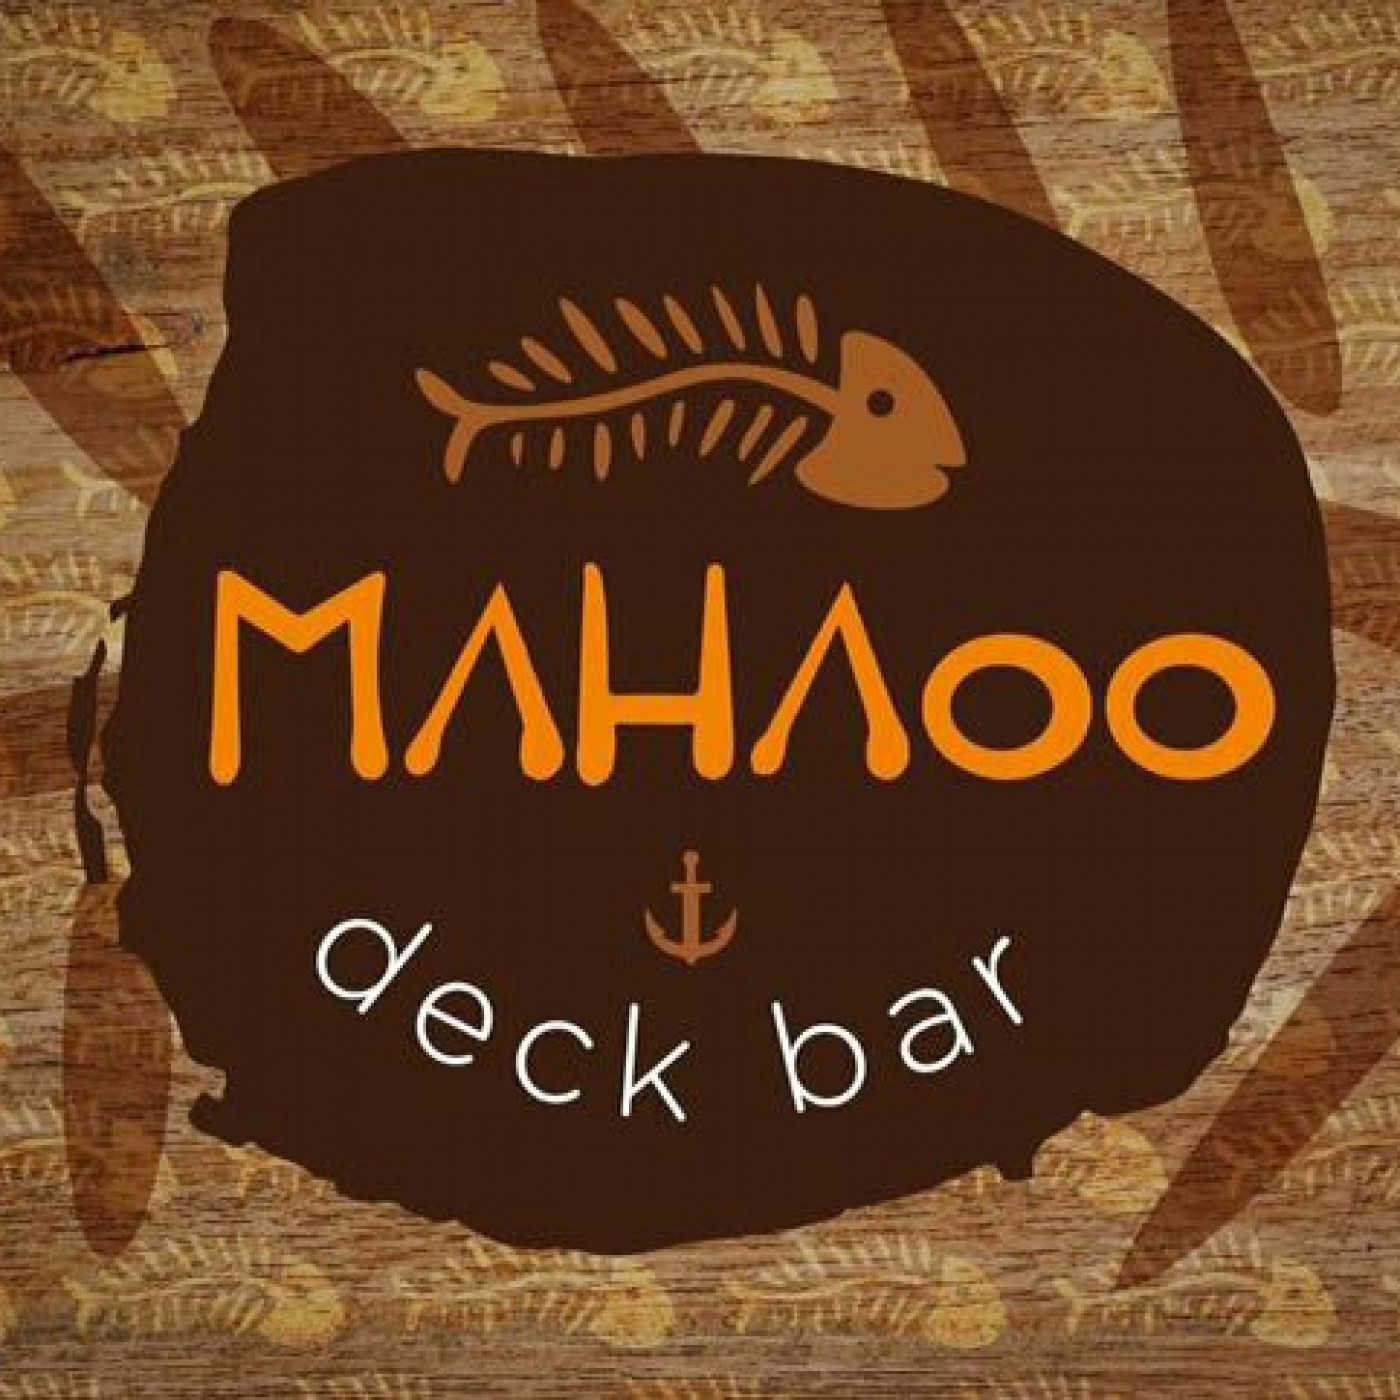 Mahaoo deck Bar